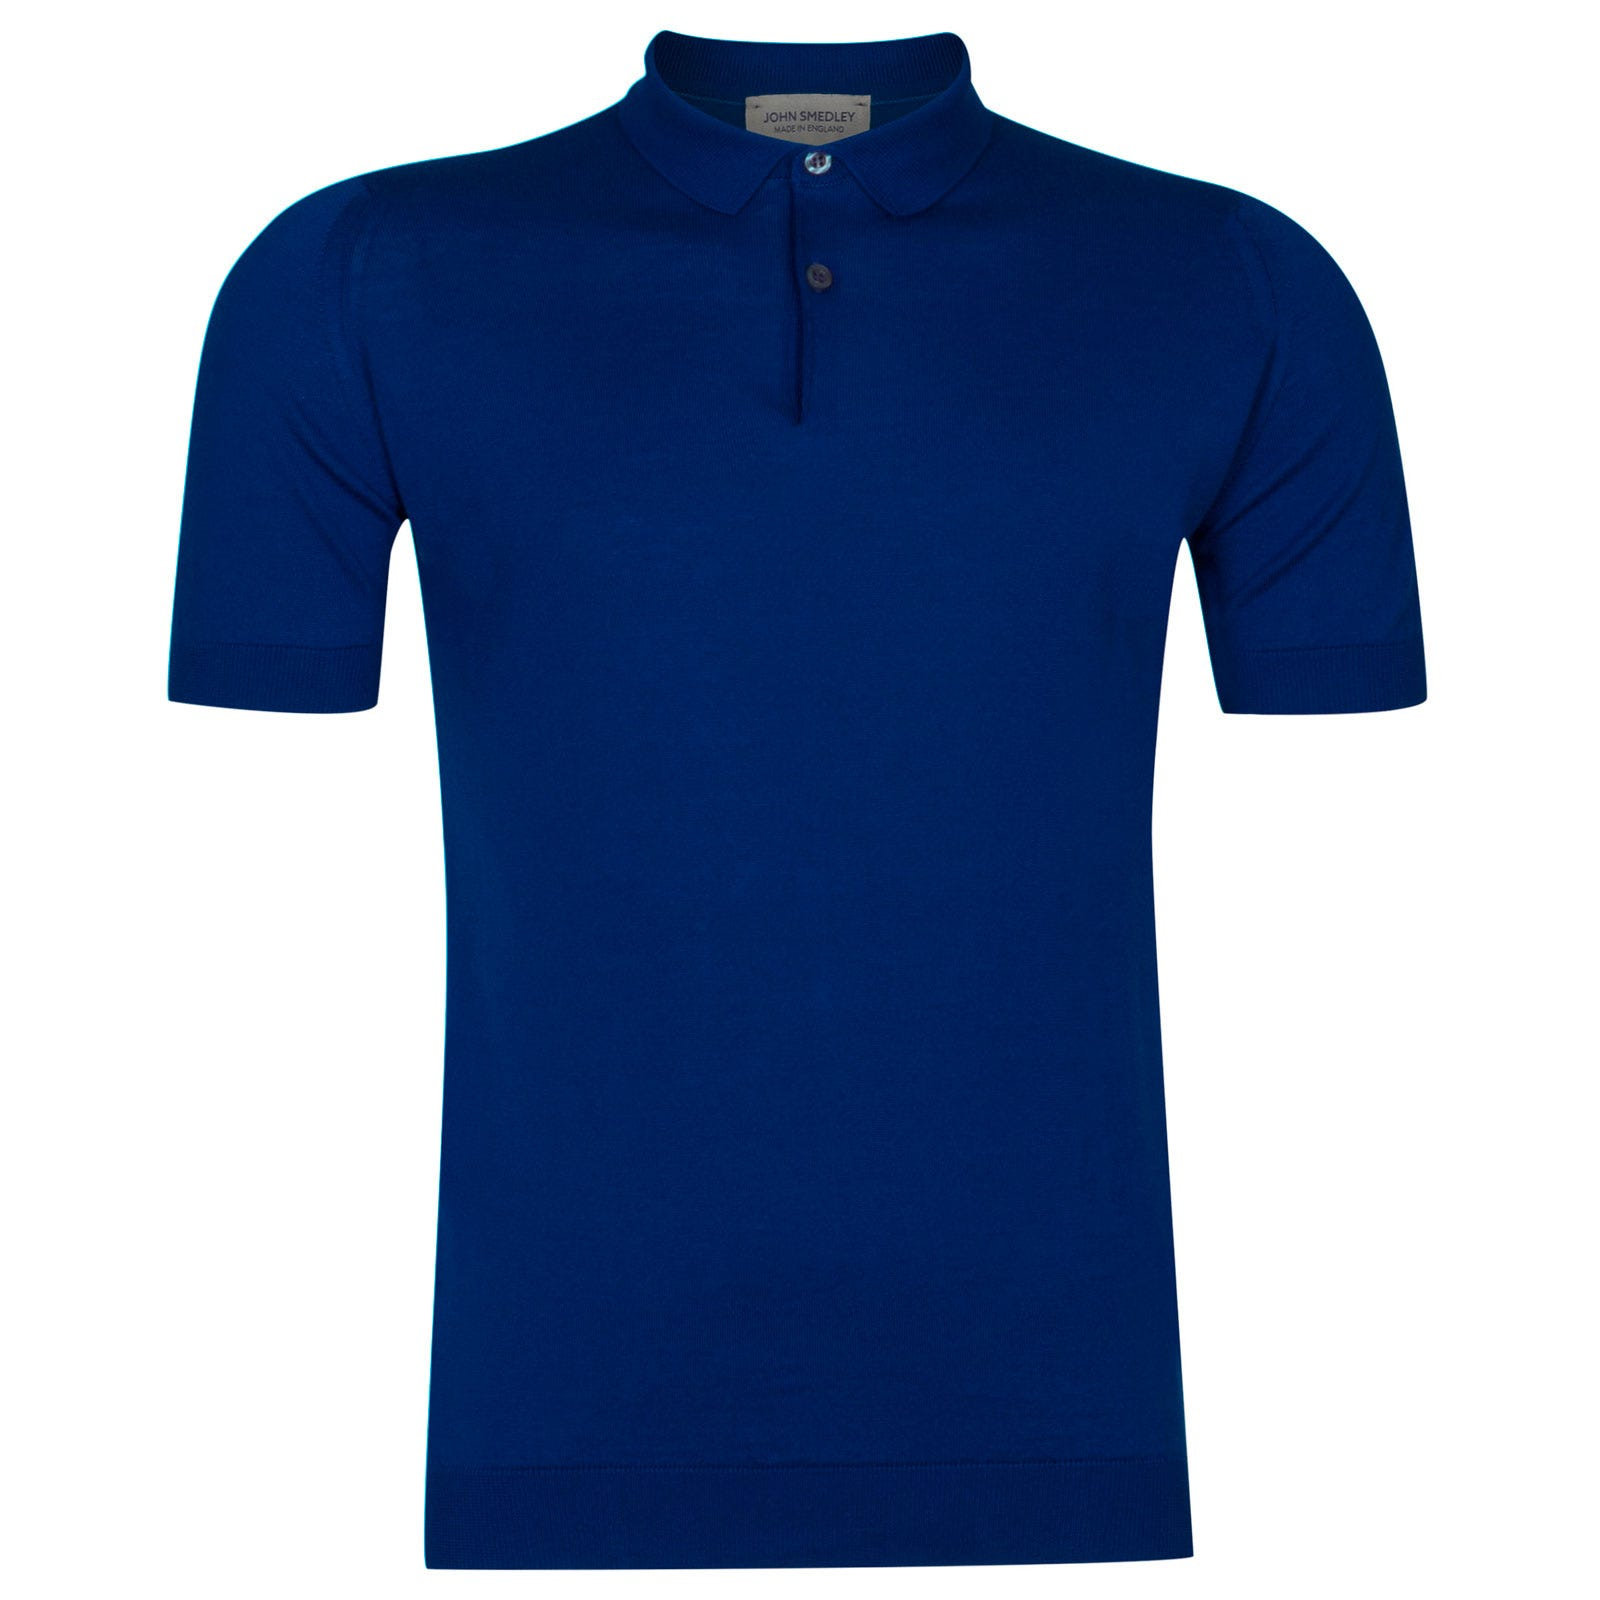 John Smedley rhodes Sea Island Cotton Shirt in Coniston Blue-L